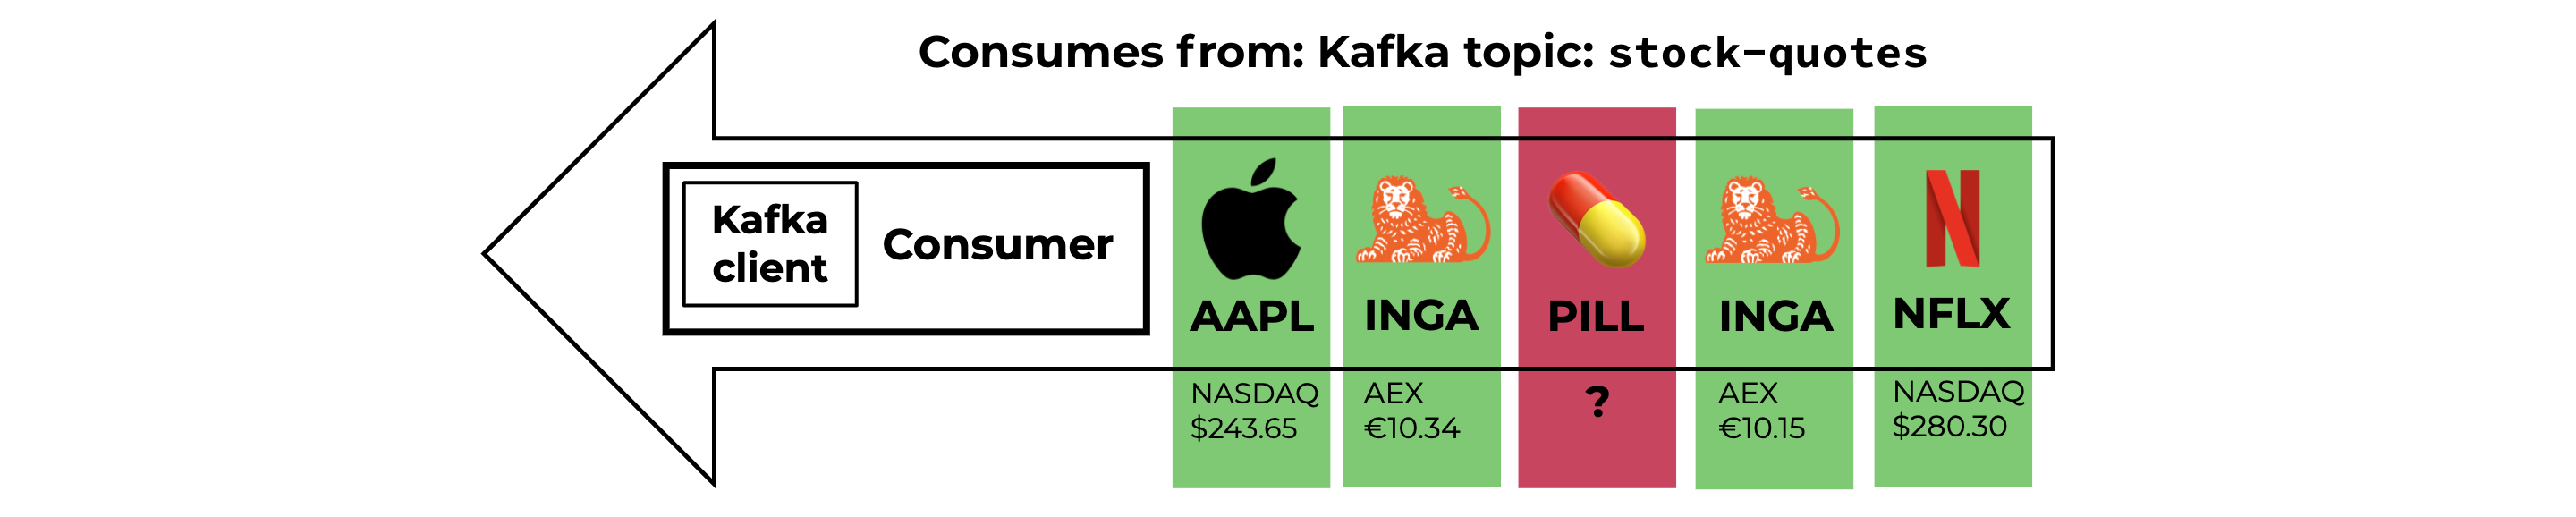 Consumes from: Kafka topic: stock-quotes